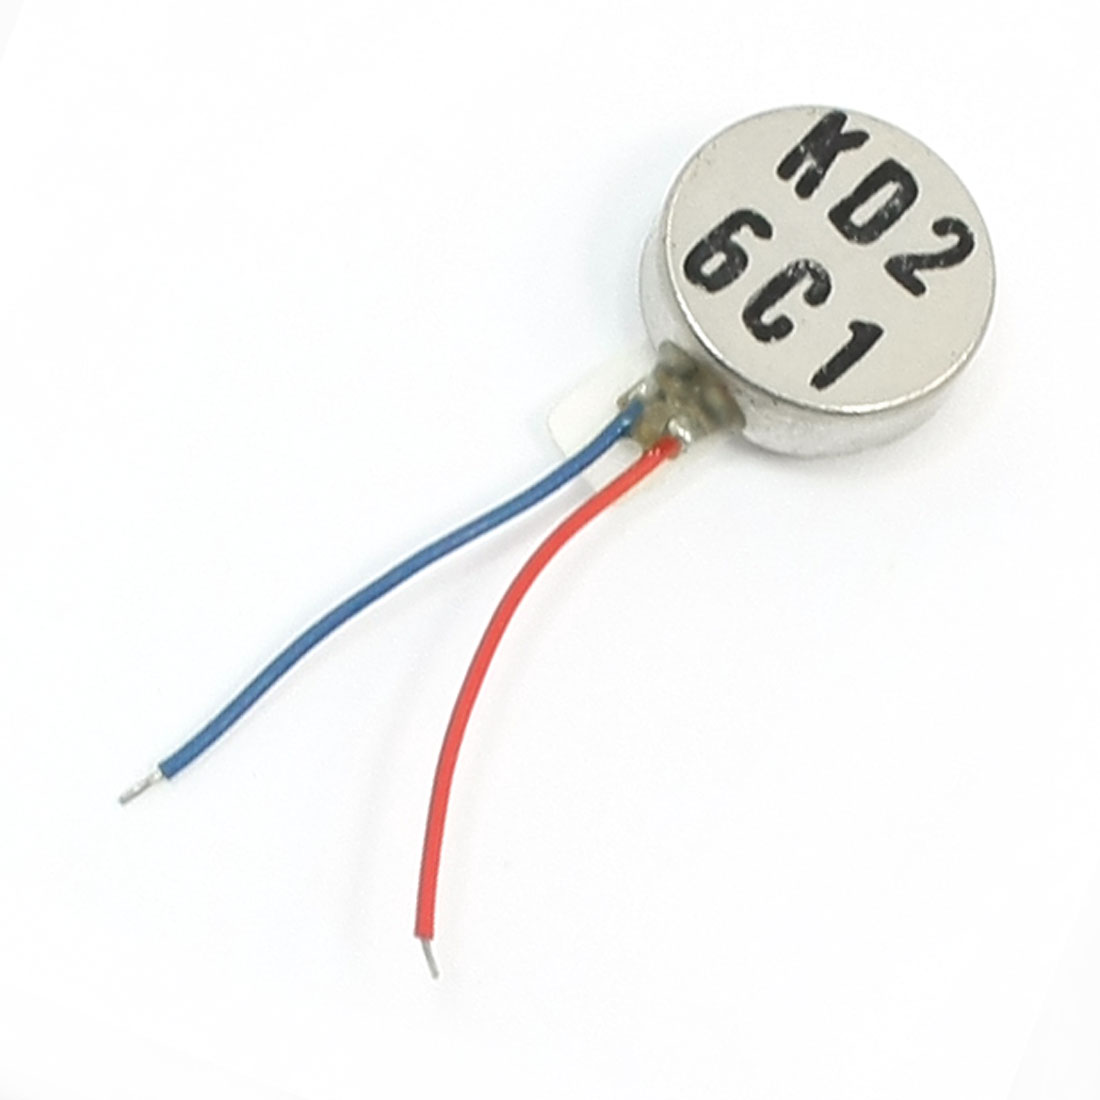 10mm-x-3-4mm-Flat-Round-Vibrating-Vibration-Motor-12000RPM-for-Mobile-Phone